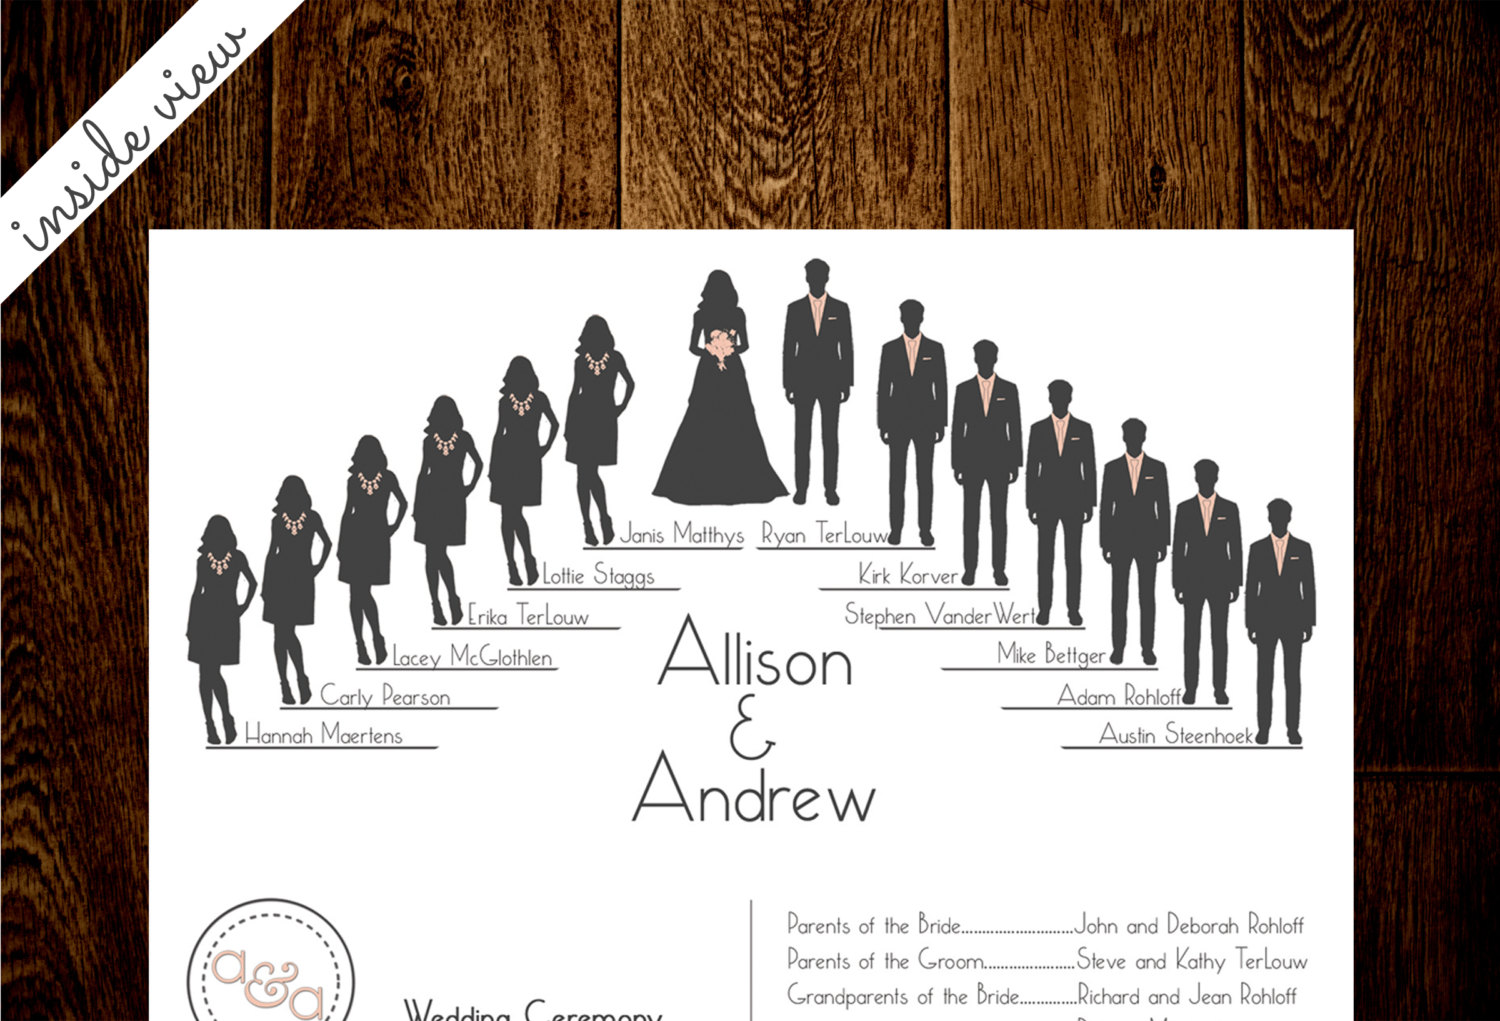 Bridal Party Silhouette Template Bridal -Bridal Party Silhouette Template Bridal Party Silhouette Clip Art-16